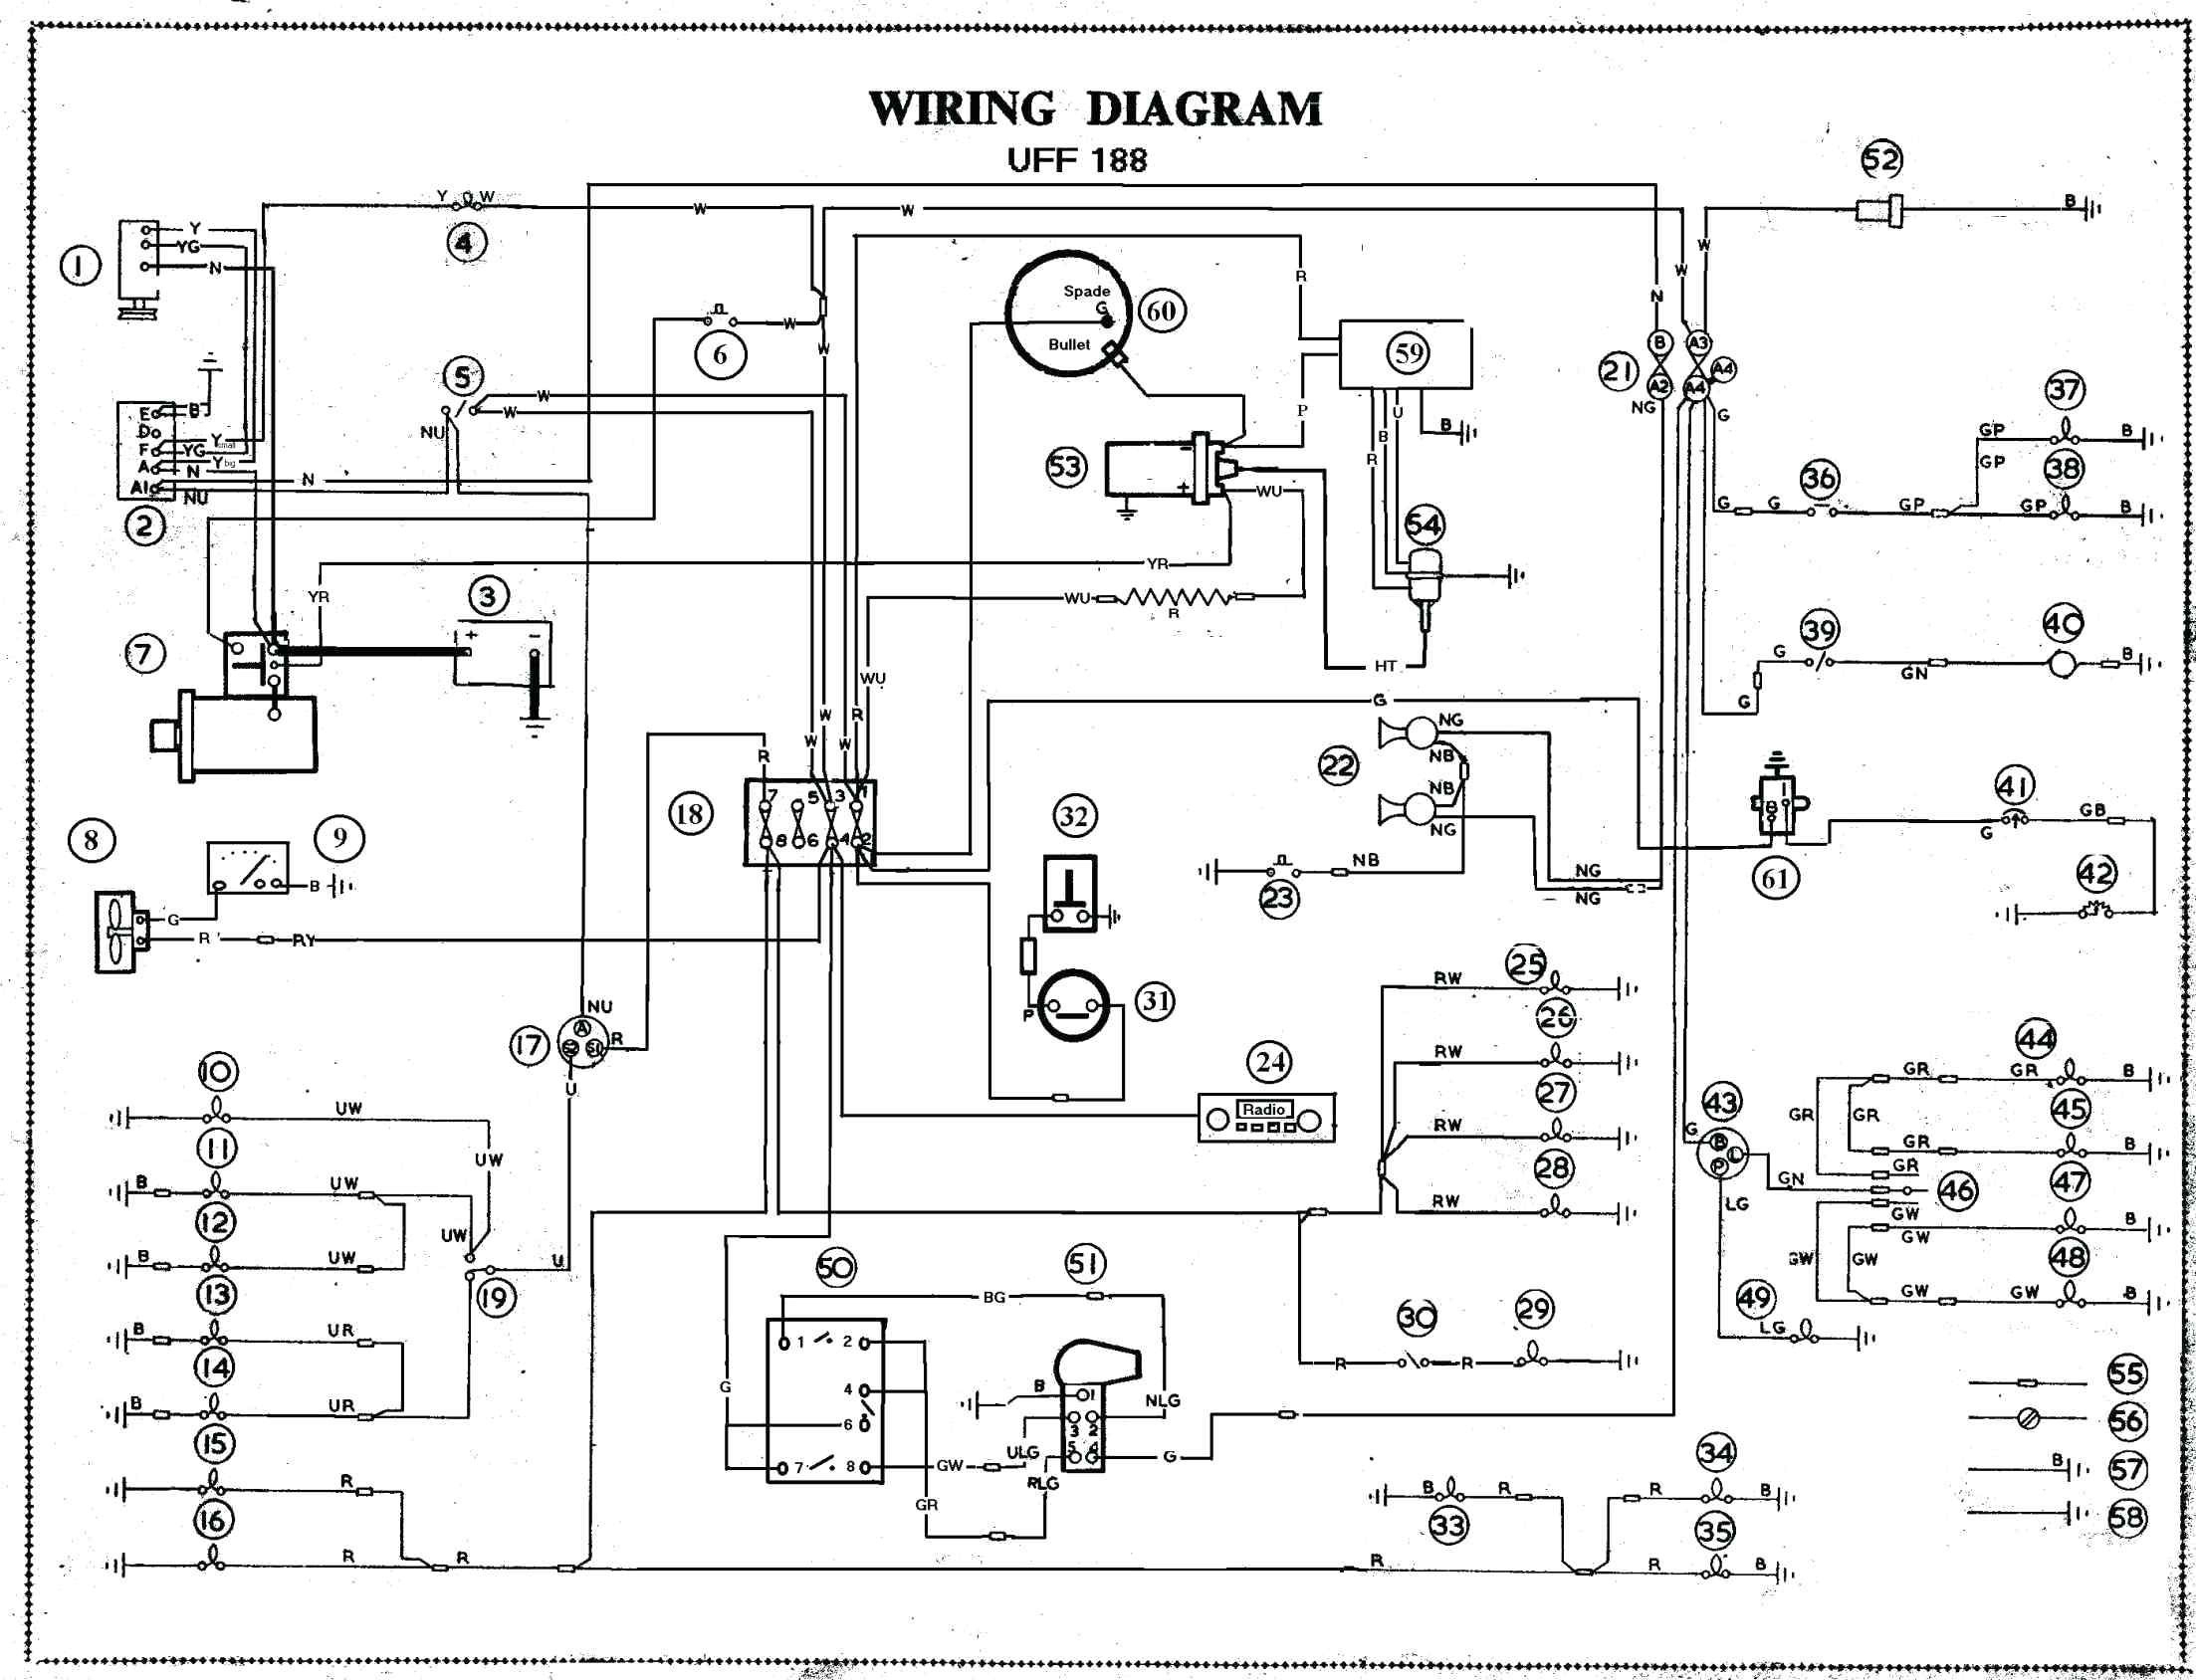 chiltons wiring diagrams manual 1991 domestic carsmotor age professional technicians edition chiltons wiring diagrams manual domestic cars